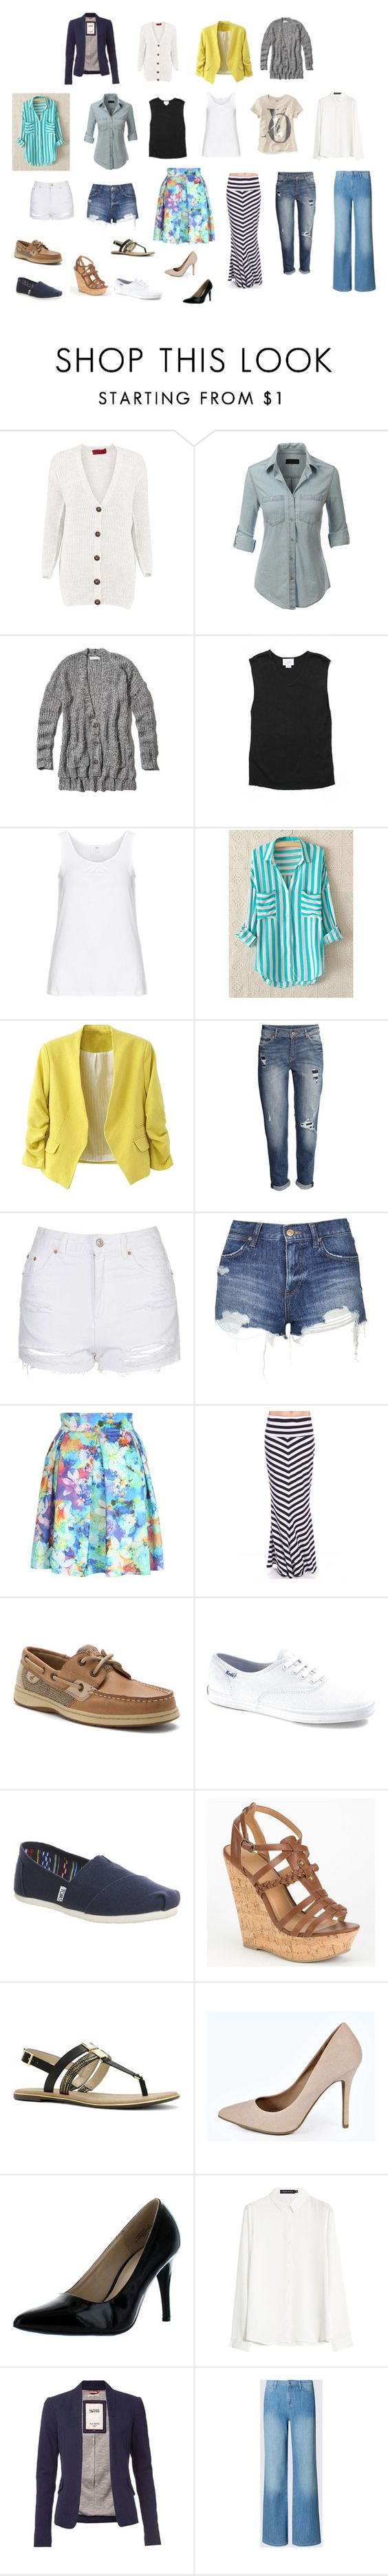 """Spring/Summer 2016"" by thexangelsxmuse on Polyvore featuring LE3NO, Abercrombie & Fitch, LOFT, Zhenzi, H&M, Topshop, Jane Norman, Sperry Top-Sider, Keds and TOMS"